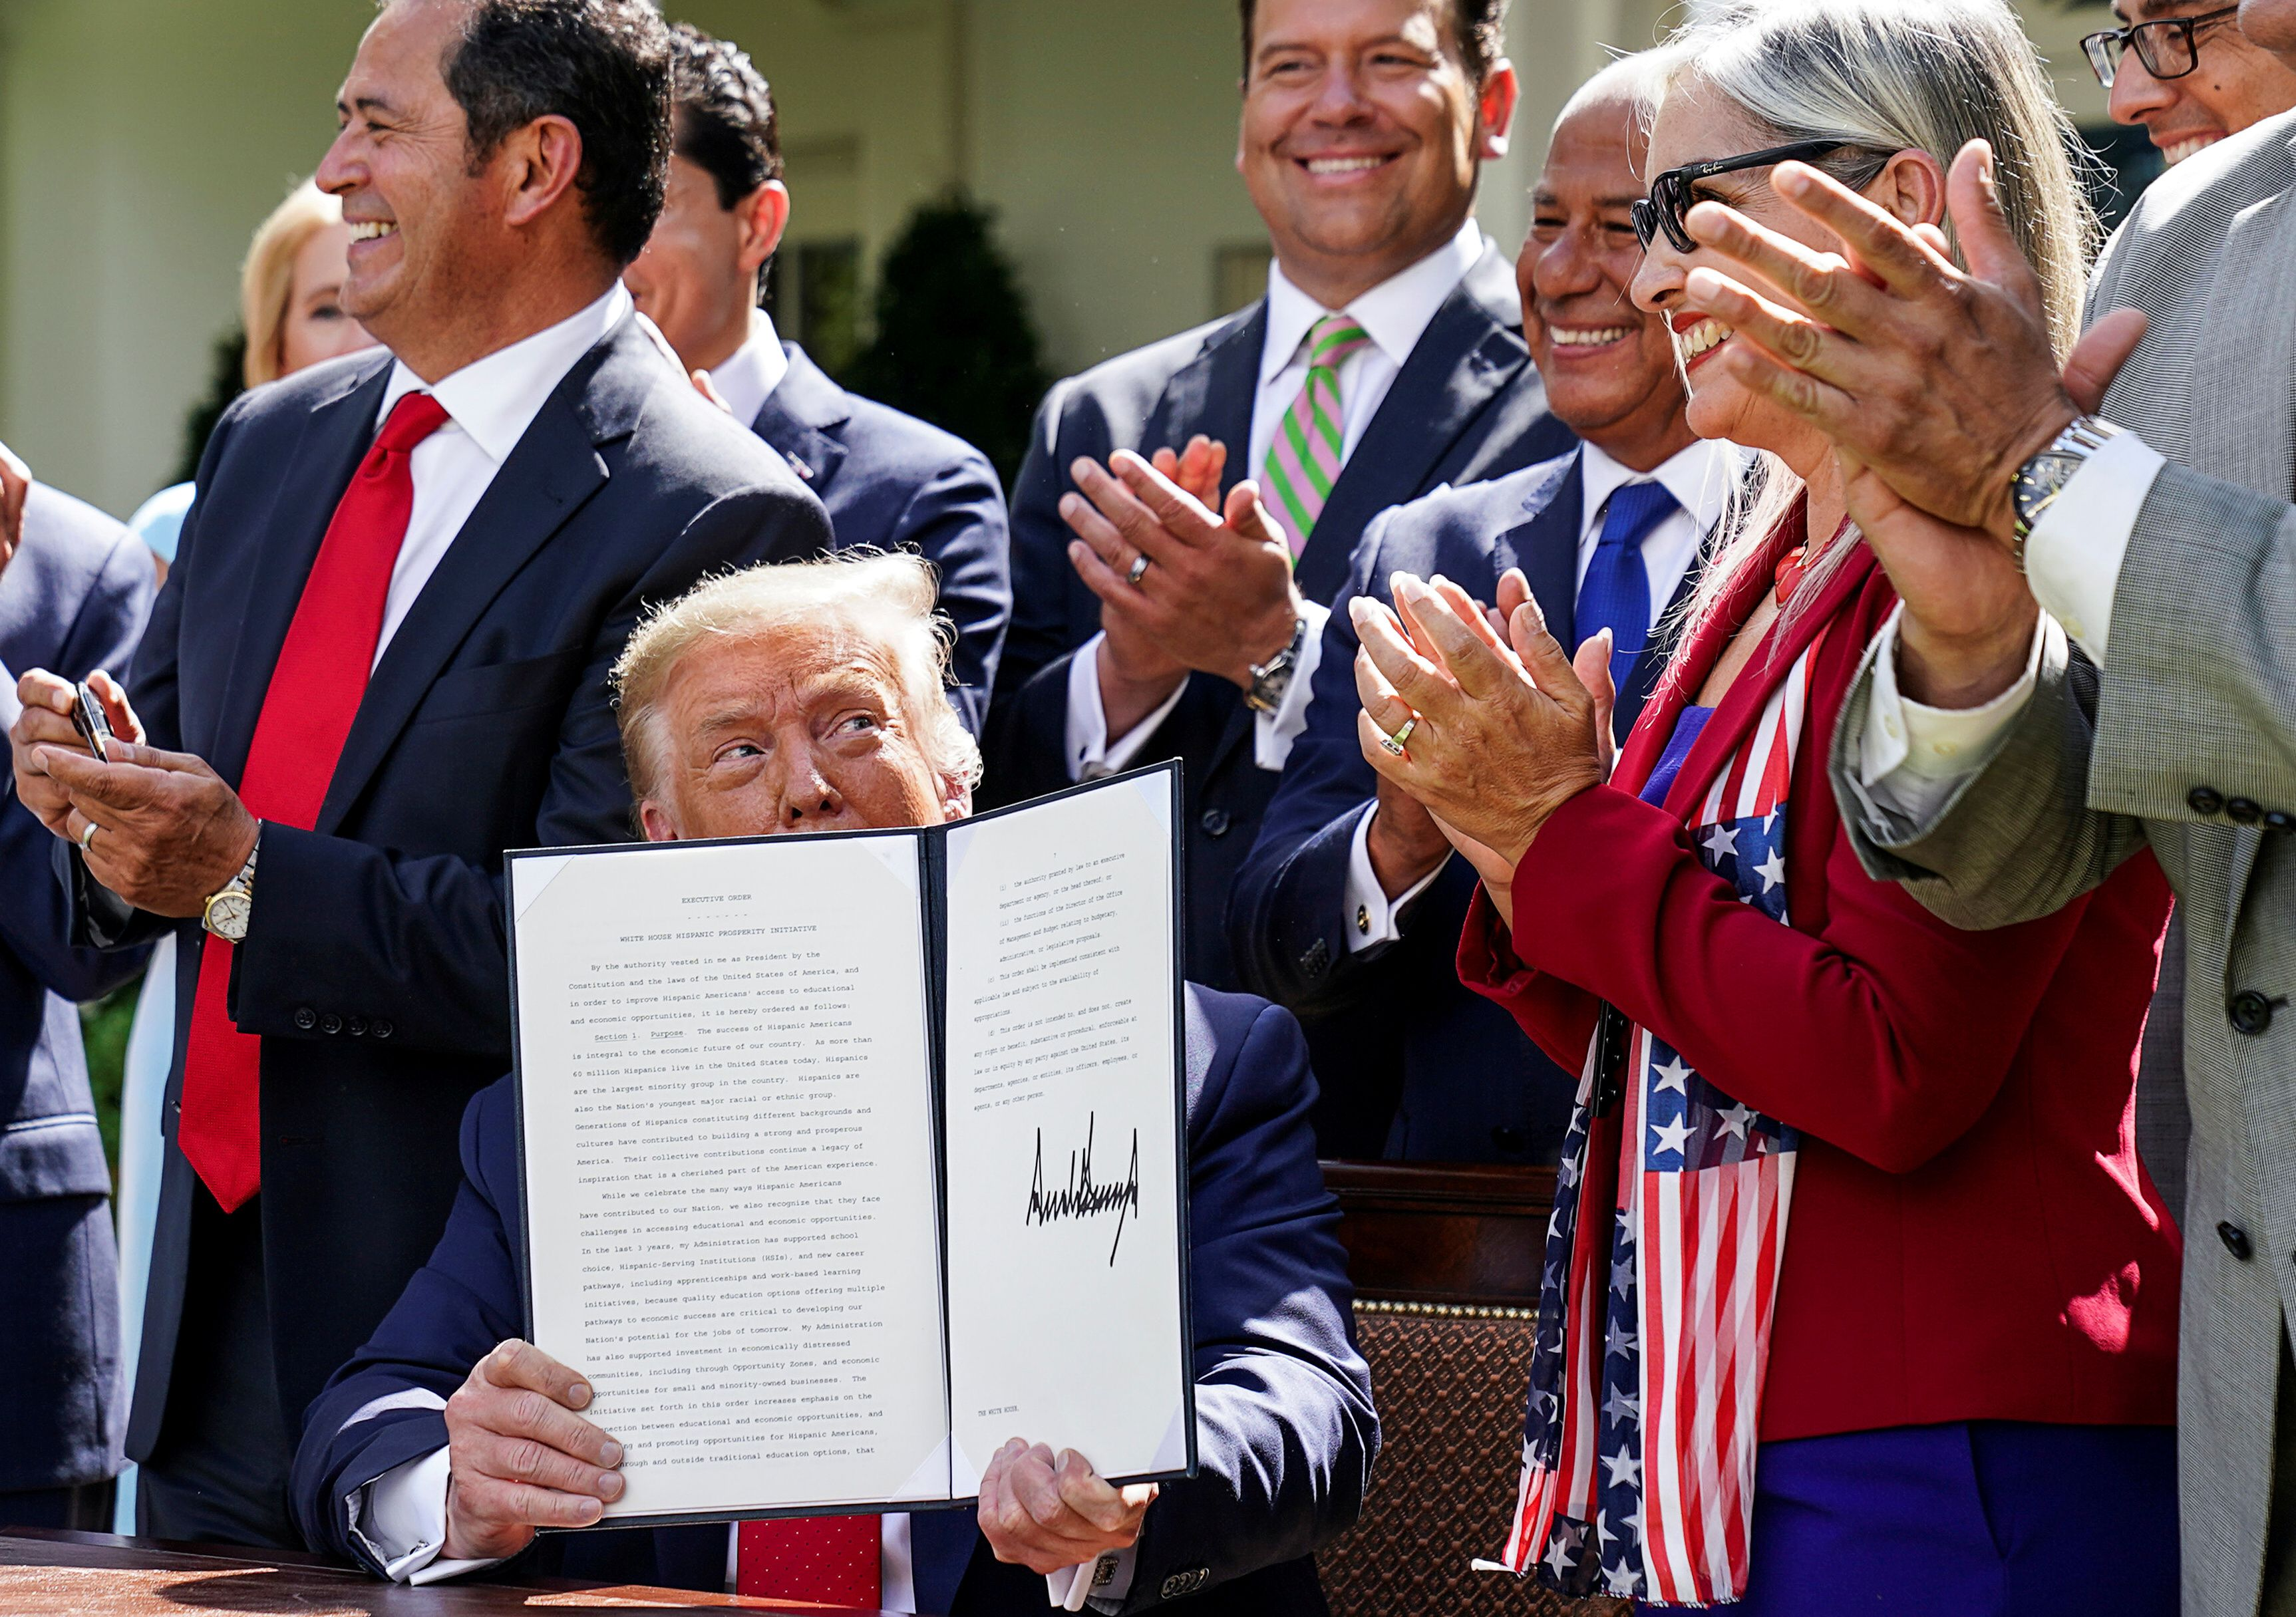 U.S. President Donald Trump holds an Executive Order during a signing ceremony in the Rose Garden at the White House in Washington, U.S., July 9, 2020. REUTERS/Kevin Lamarque/File Photo